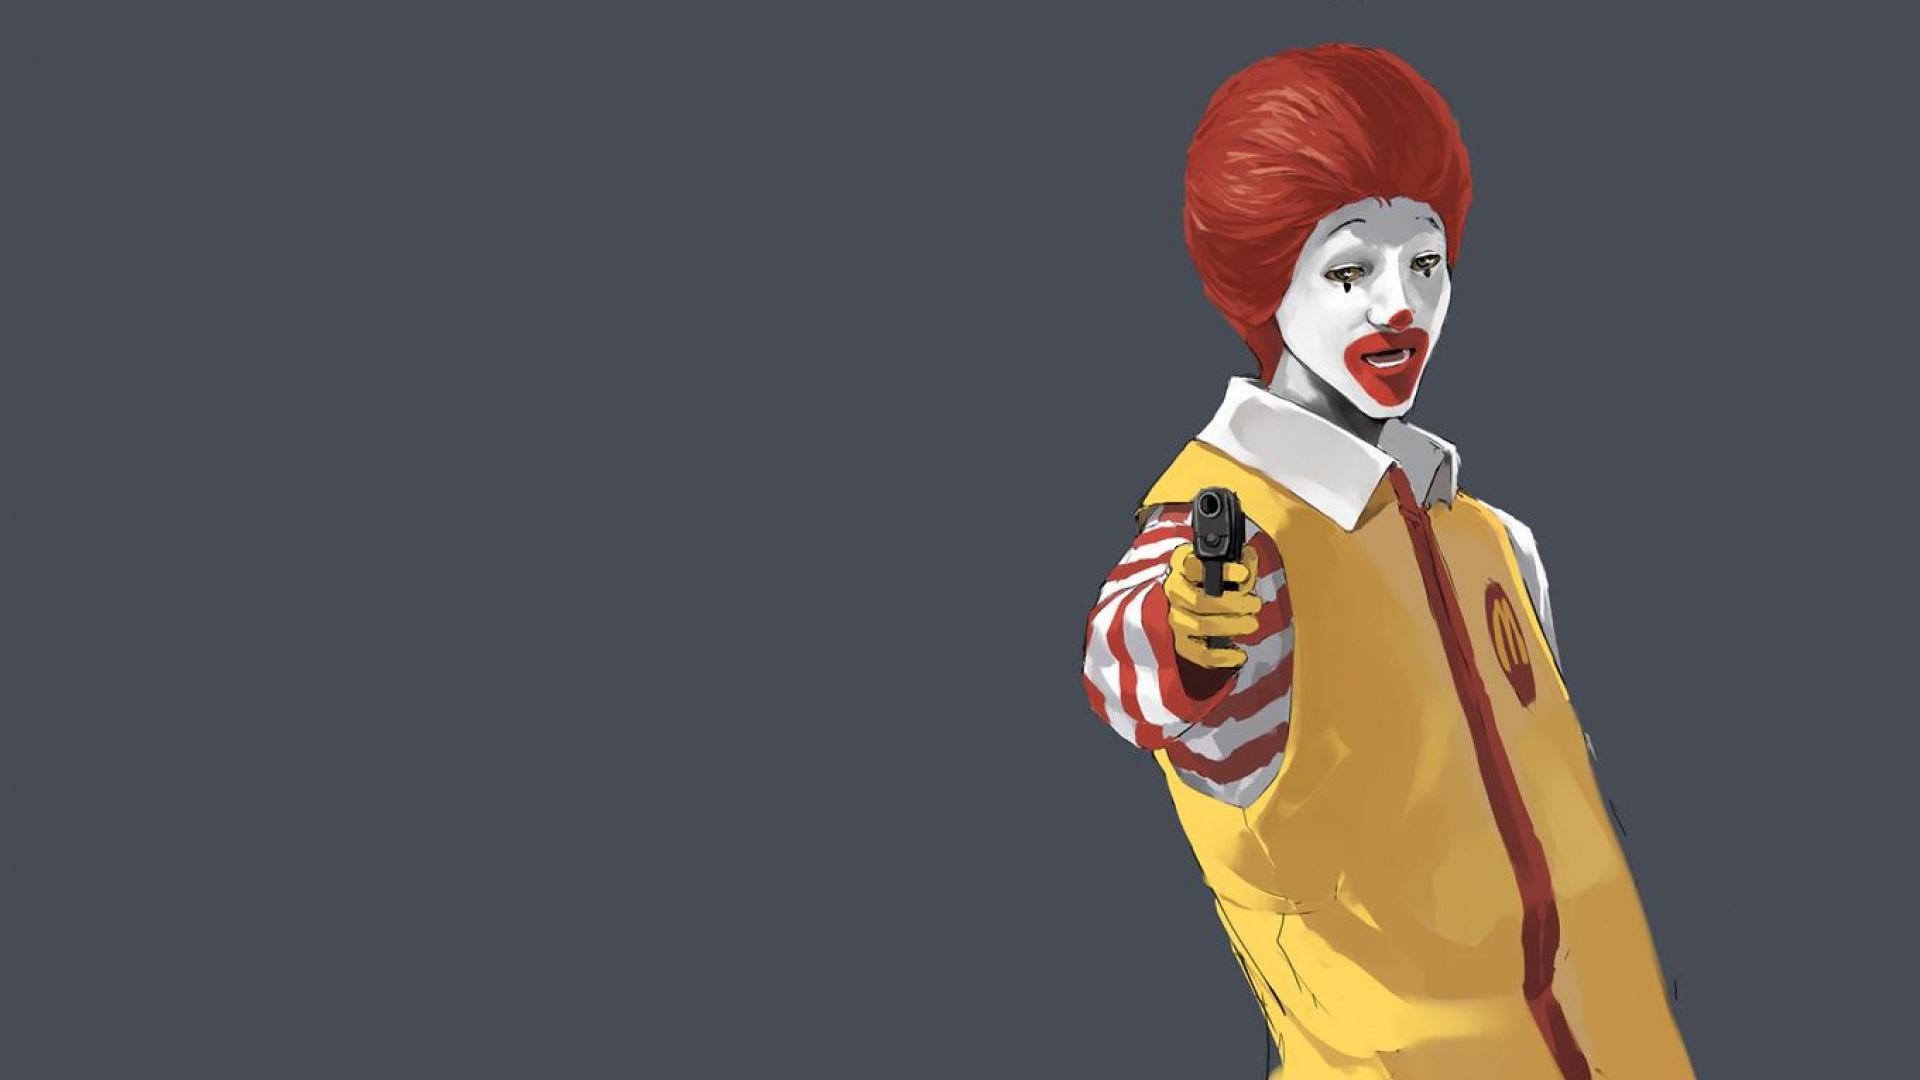 ronald-mcdonald-clowns-guns-44575-1920x1080